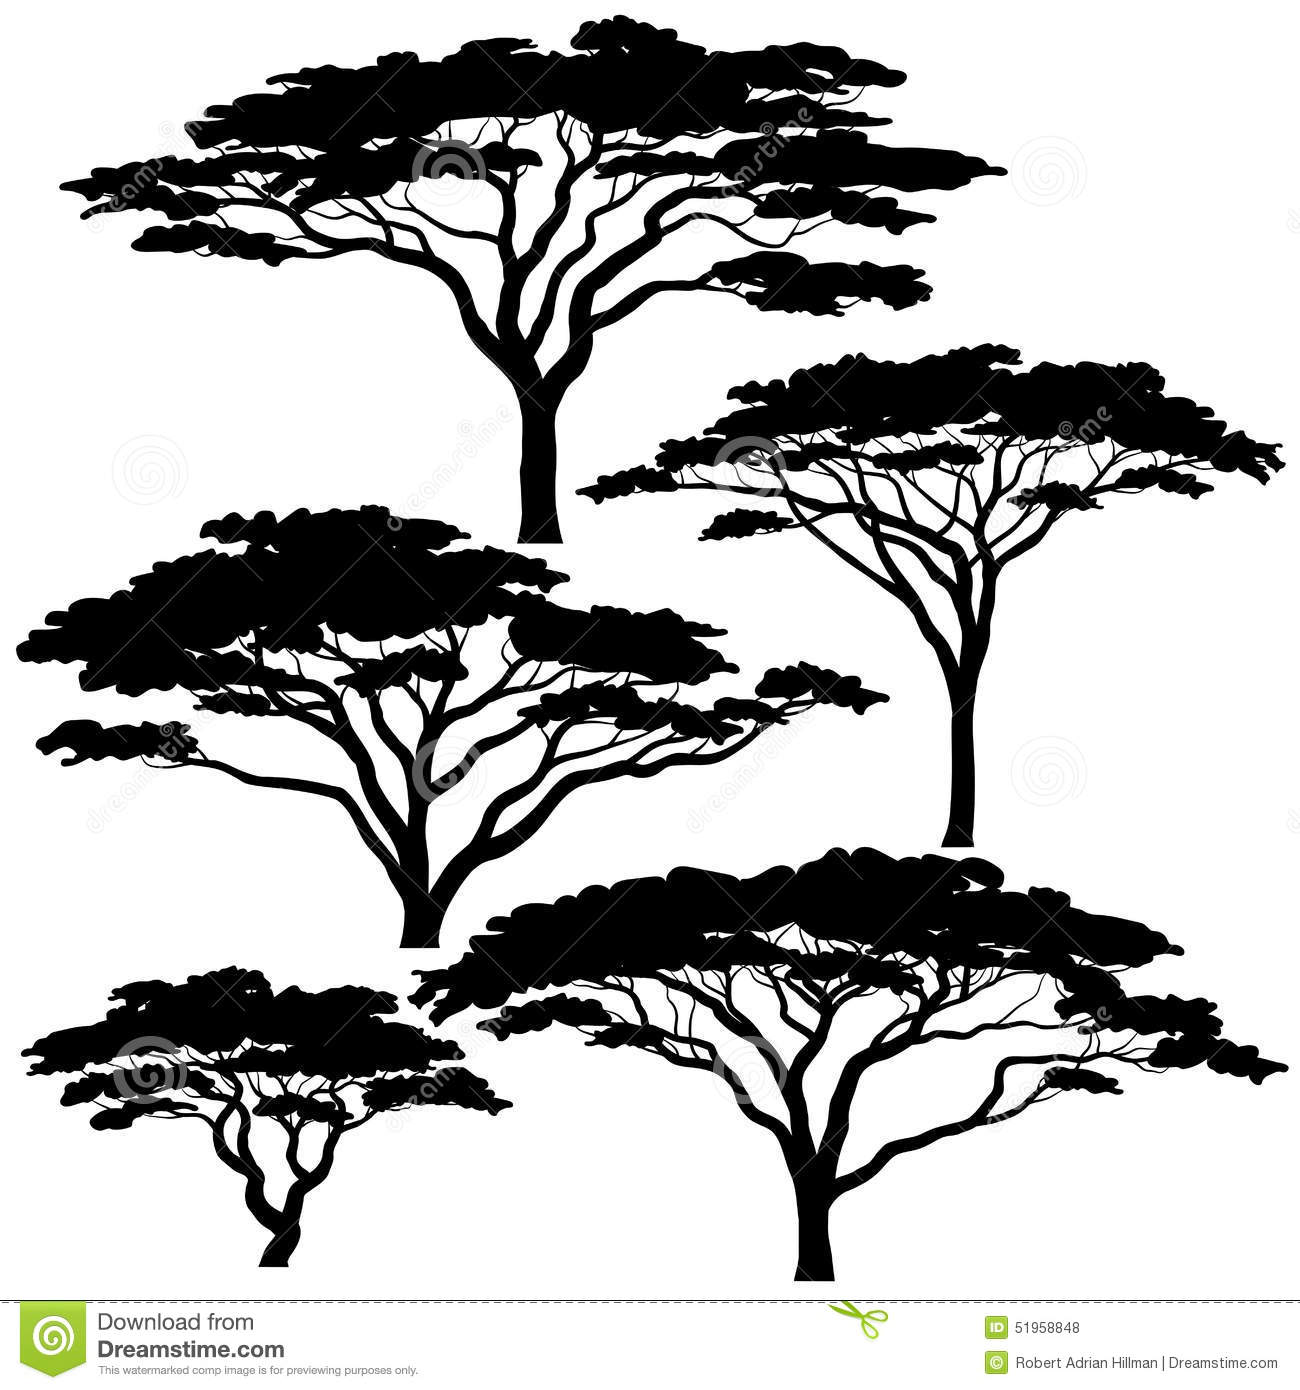 Set of eps8 editable vector silhouettes of acacia trees.